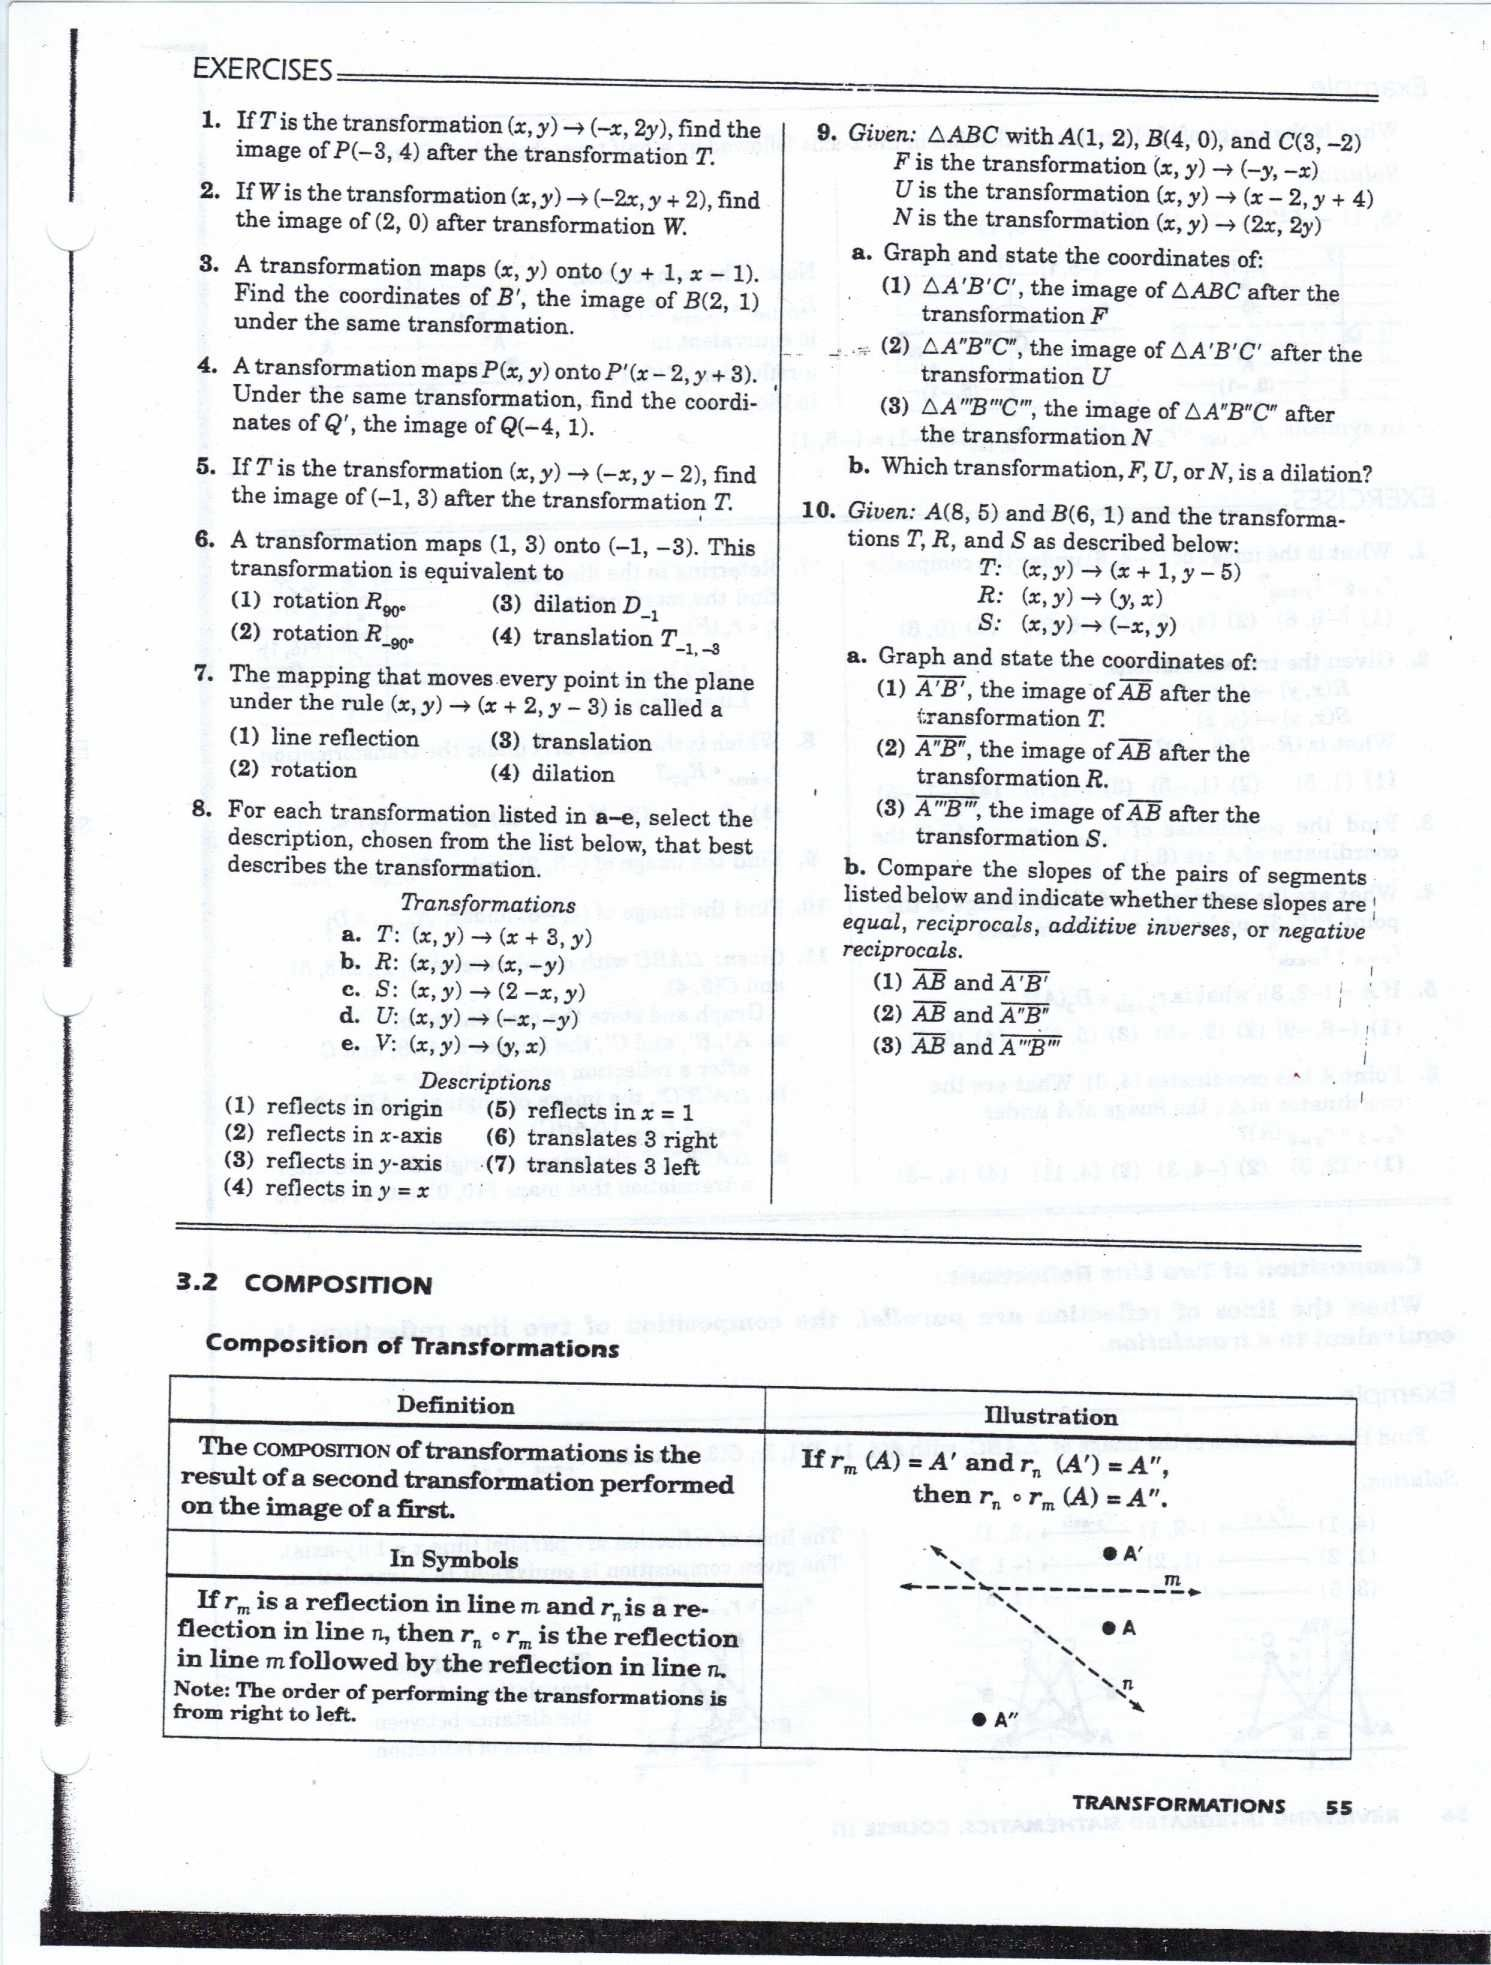 Geometry Transformation Composition Worksheet Answers